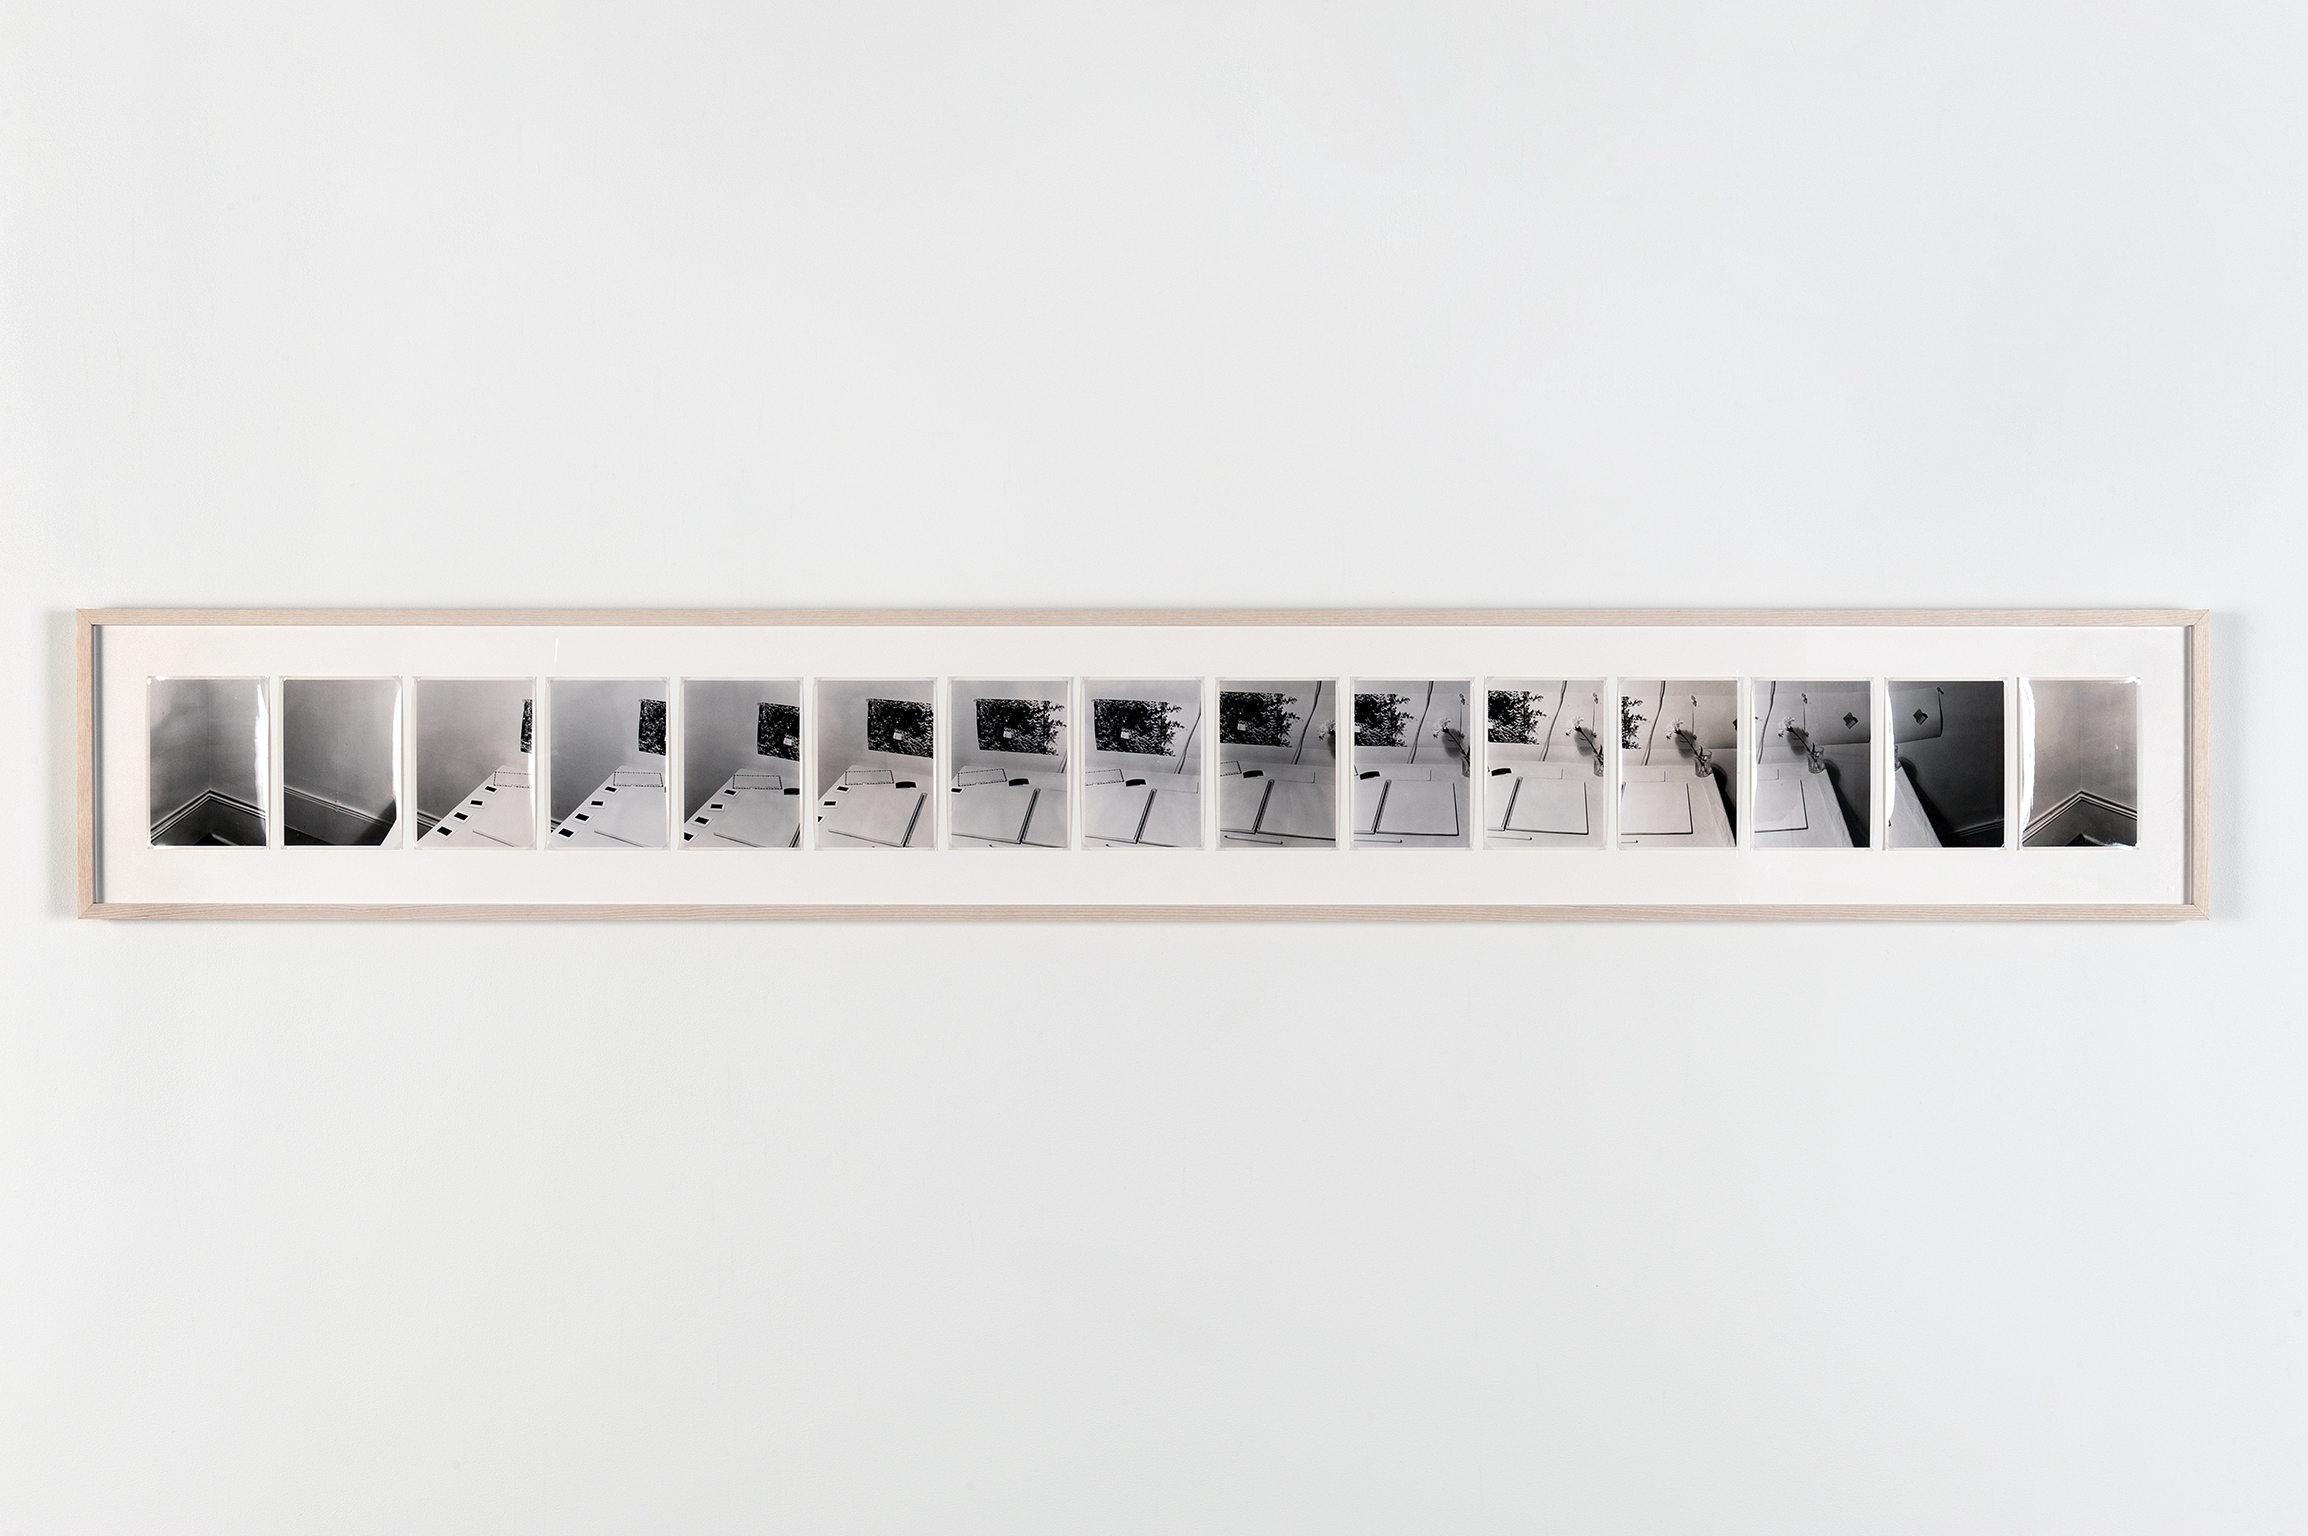 Robert Kleyn, Table Pan, 1974, black and white photographs, 13 x 88 in. (32 x 22 cm)  ​ by